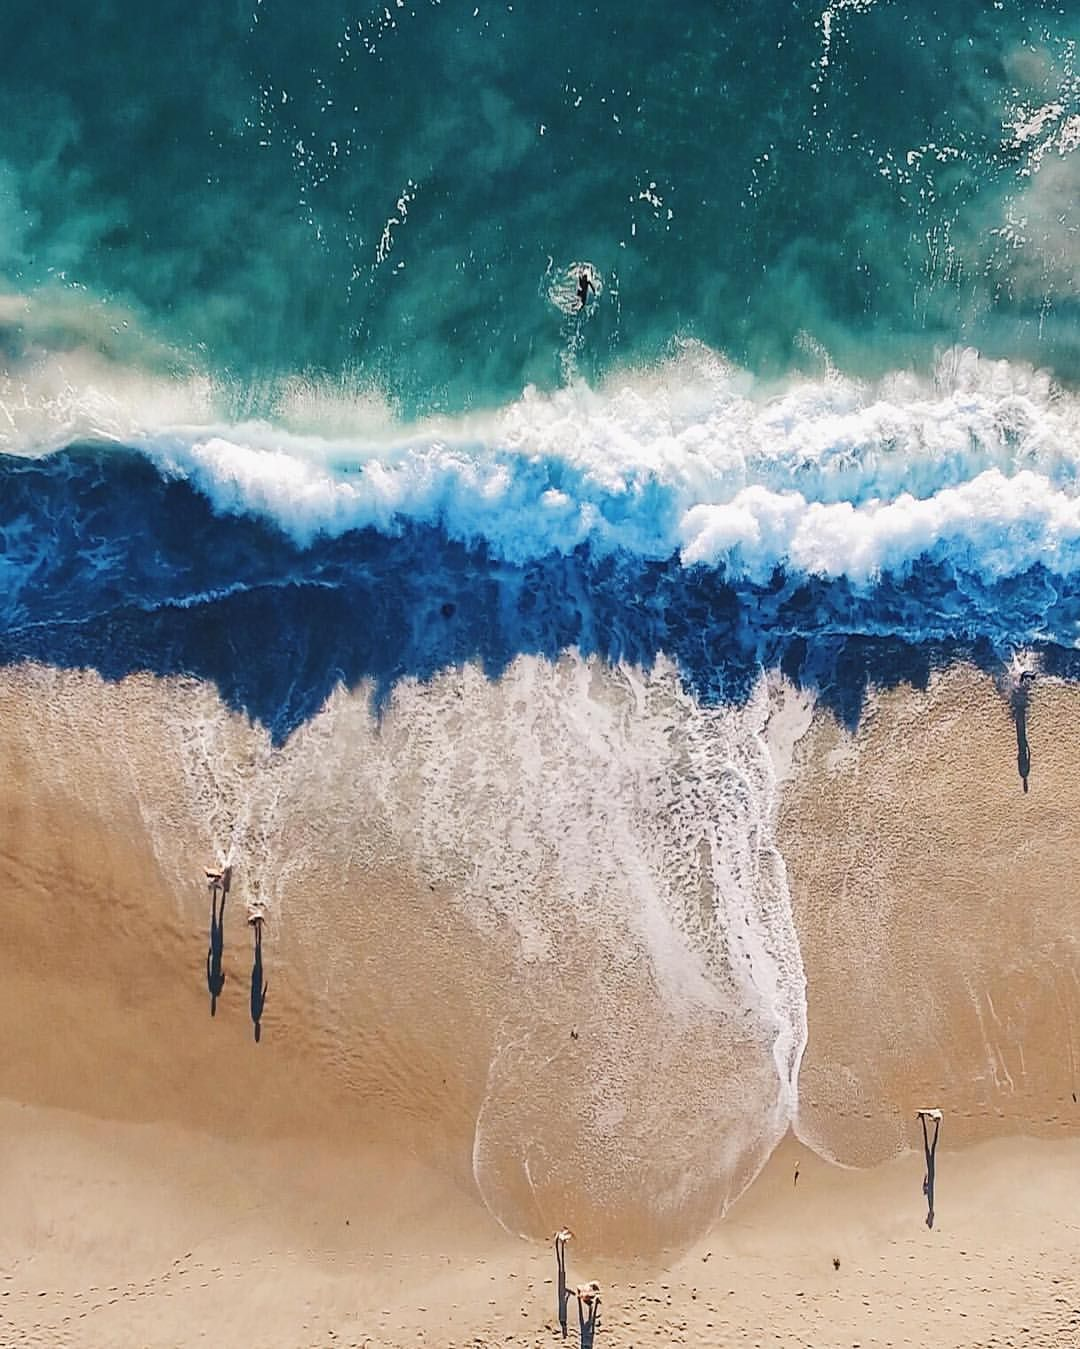 Talk About One Of My FAVORITE Drone Photos Ever Taken This Was In Laguna Beach California And With Old DJI Phantom 3 Standard